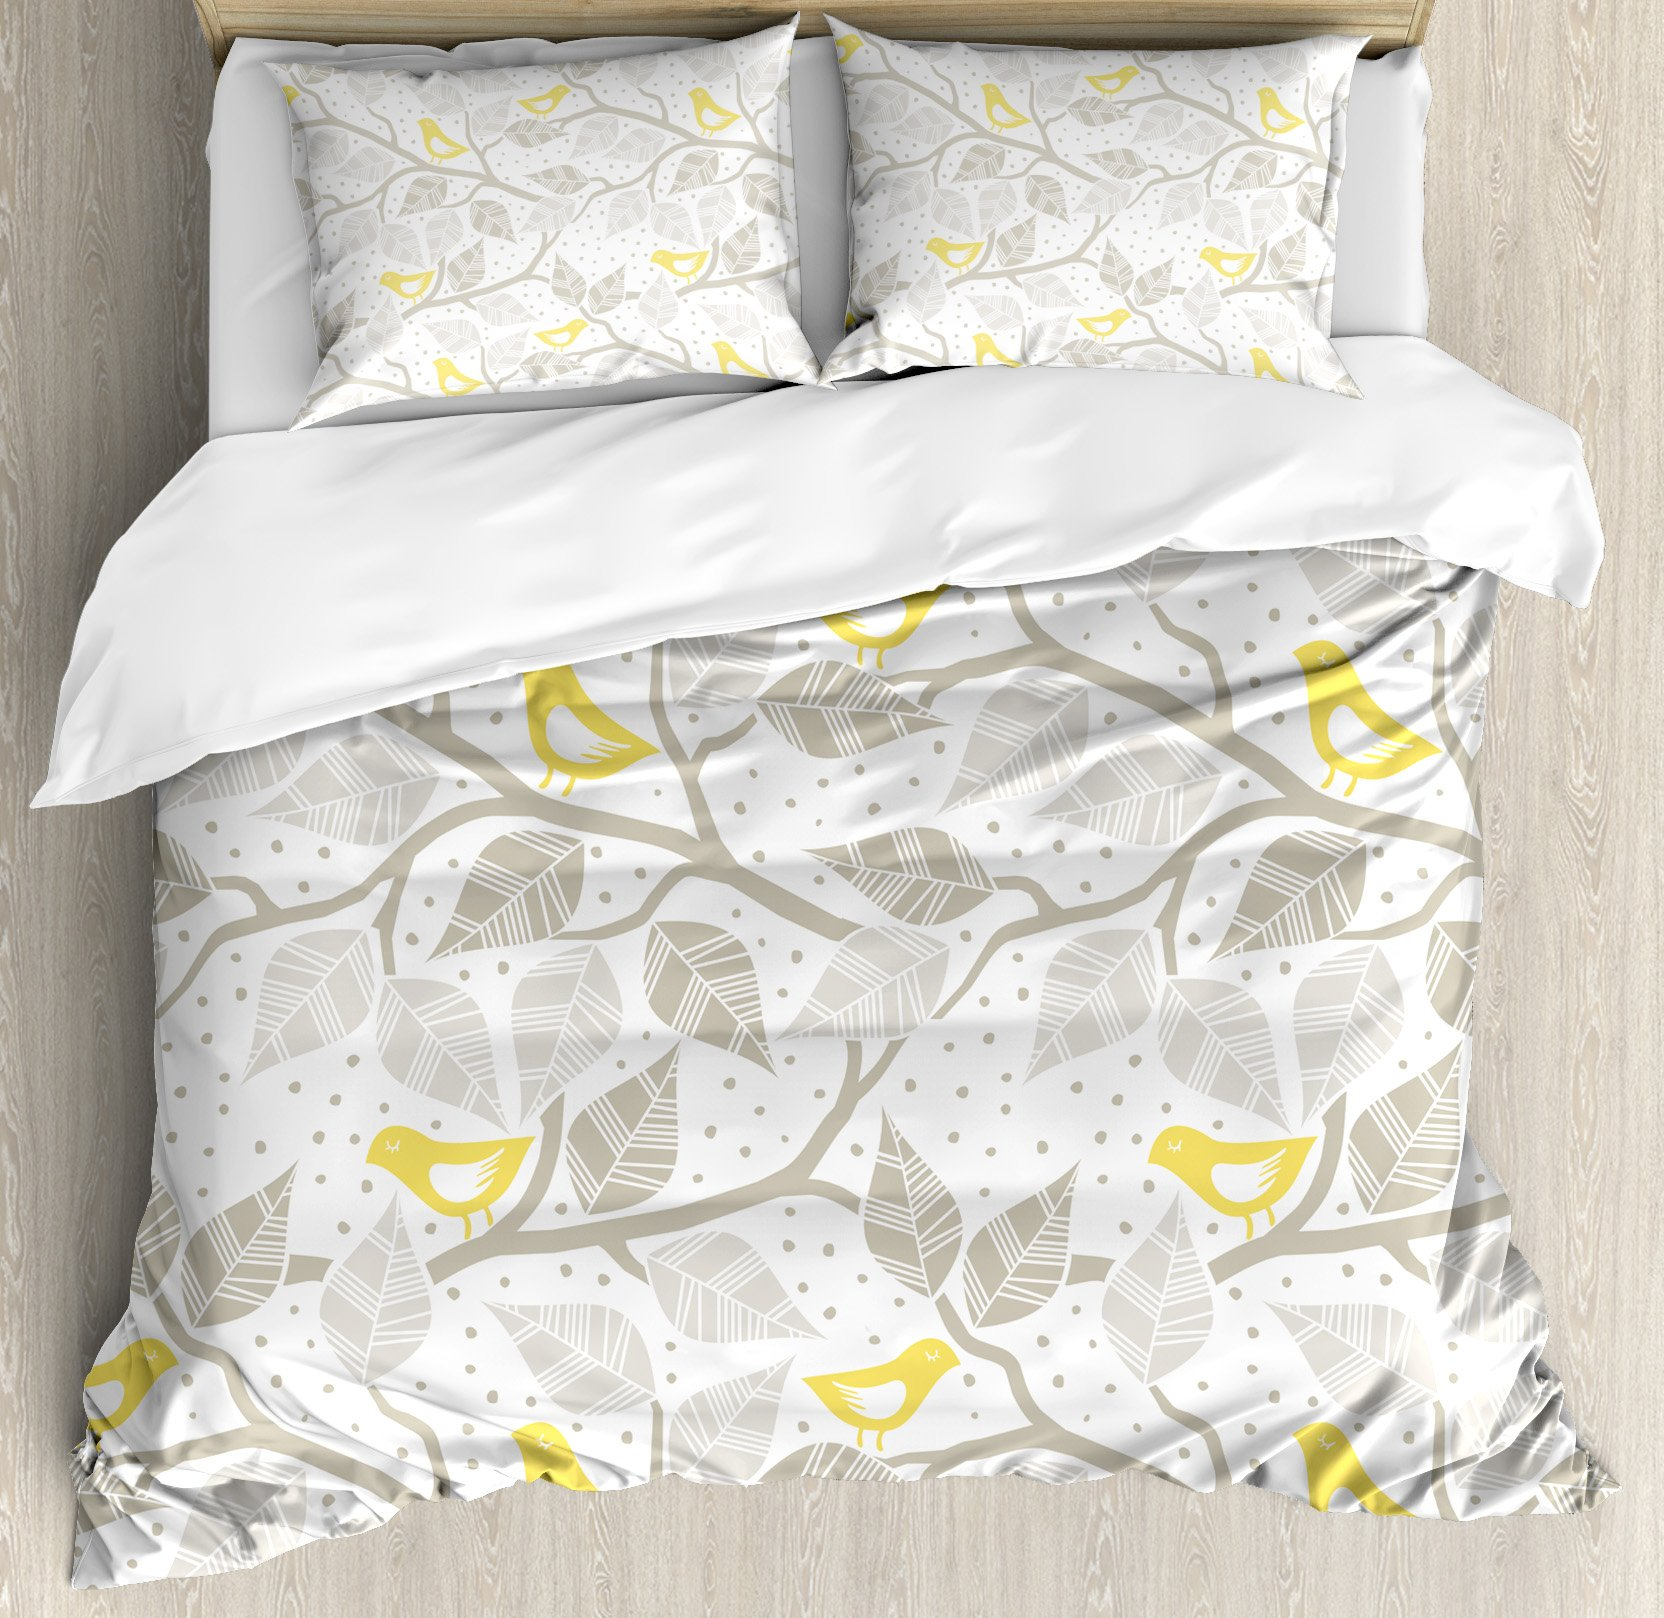 Ambesonne Grey Duvet Cover Set King Size, Birds on the Branch with Pastel Colored Leaves on Dotted Background Nature Art, Decorative 3 Piece Bedding Set with 2 Pillow Shams, Yellow Tan White